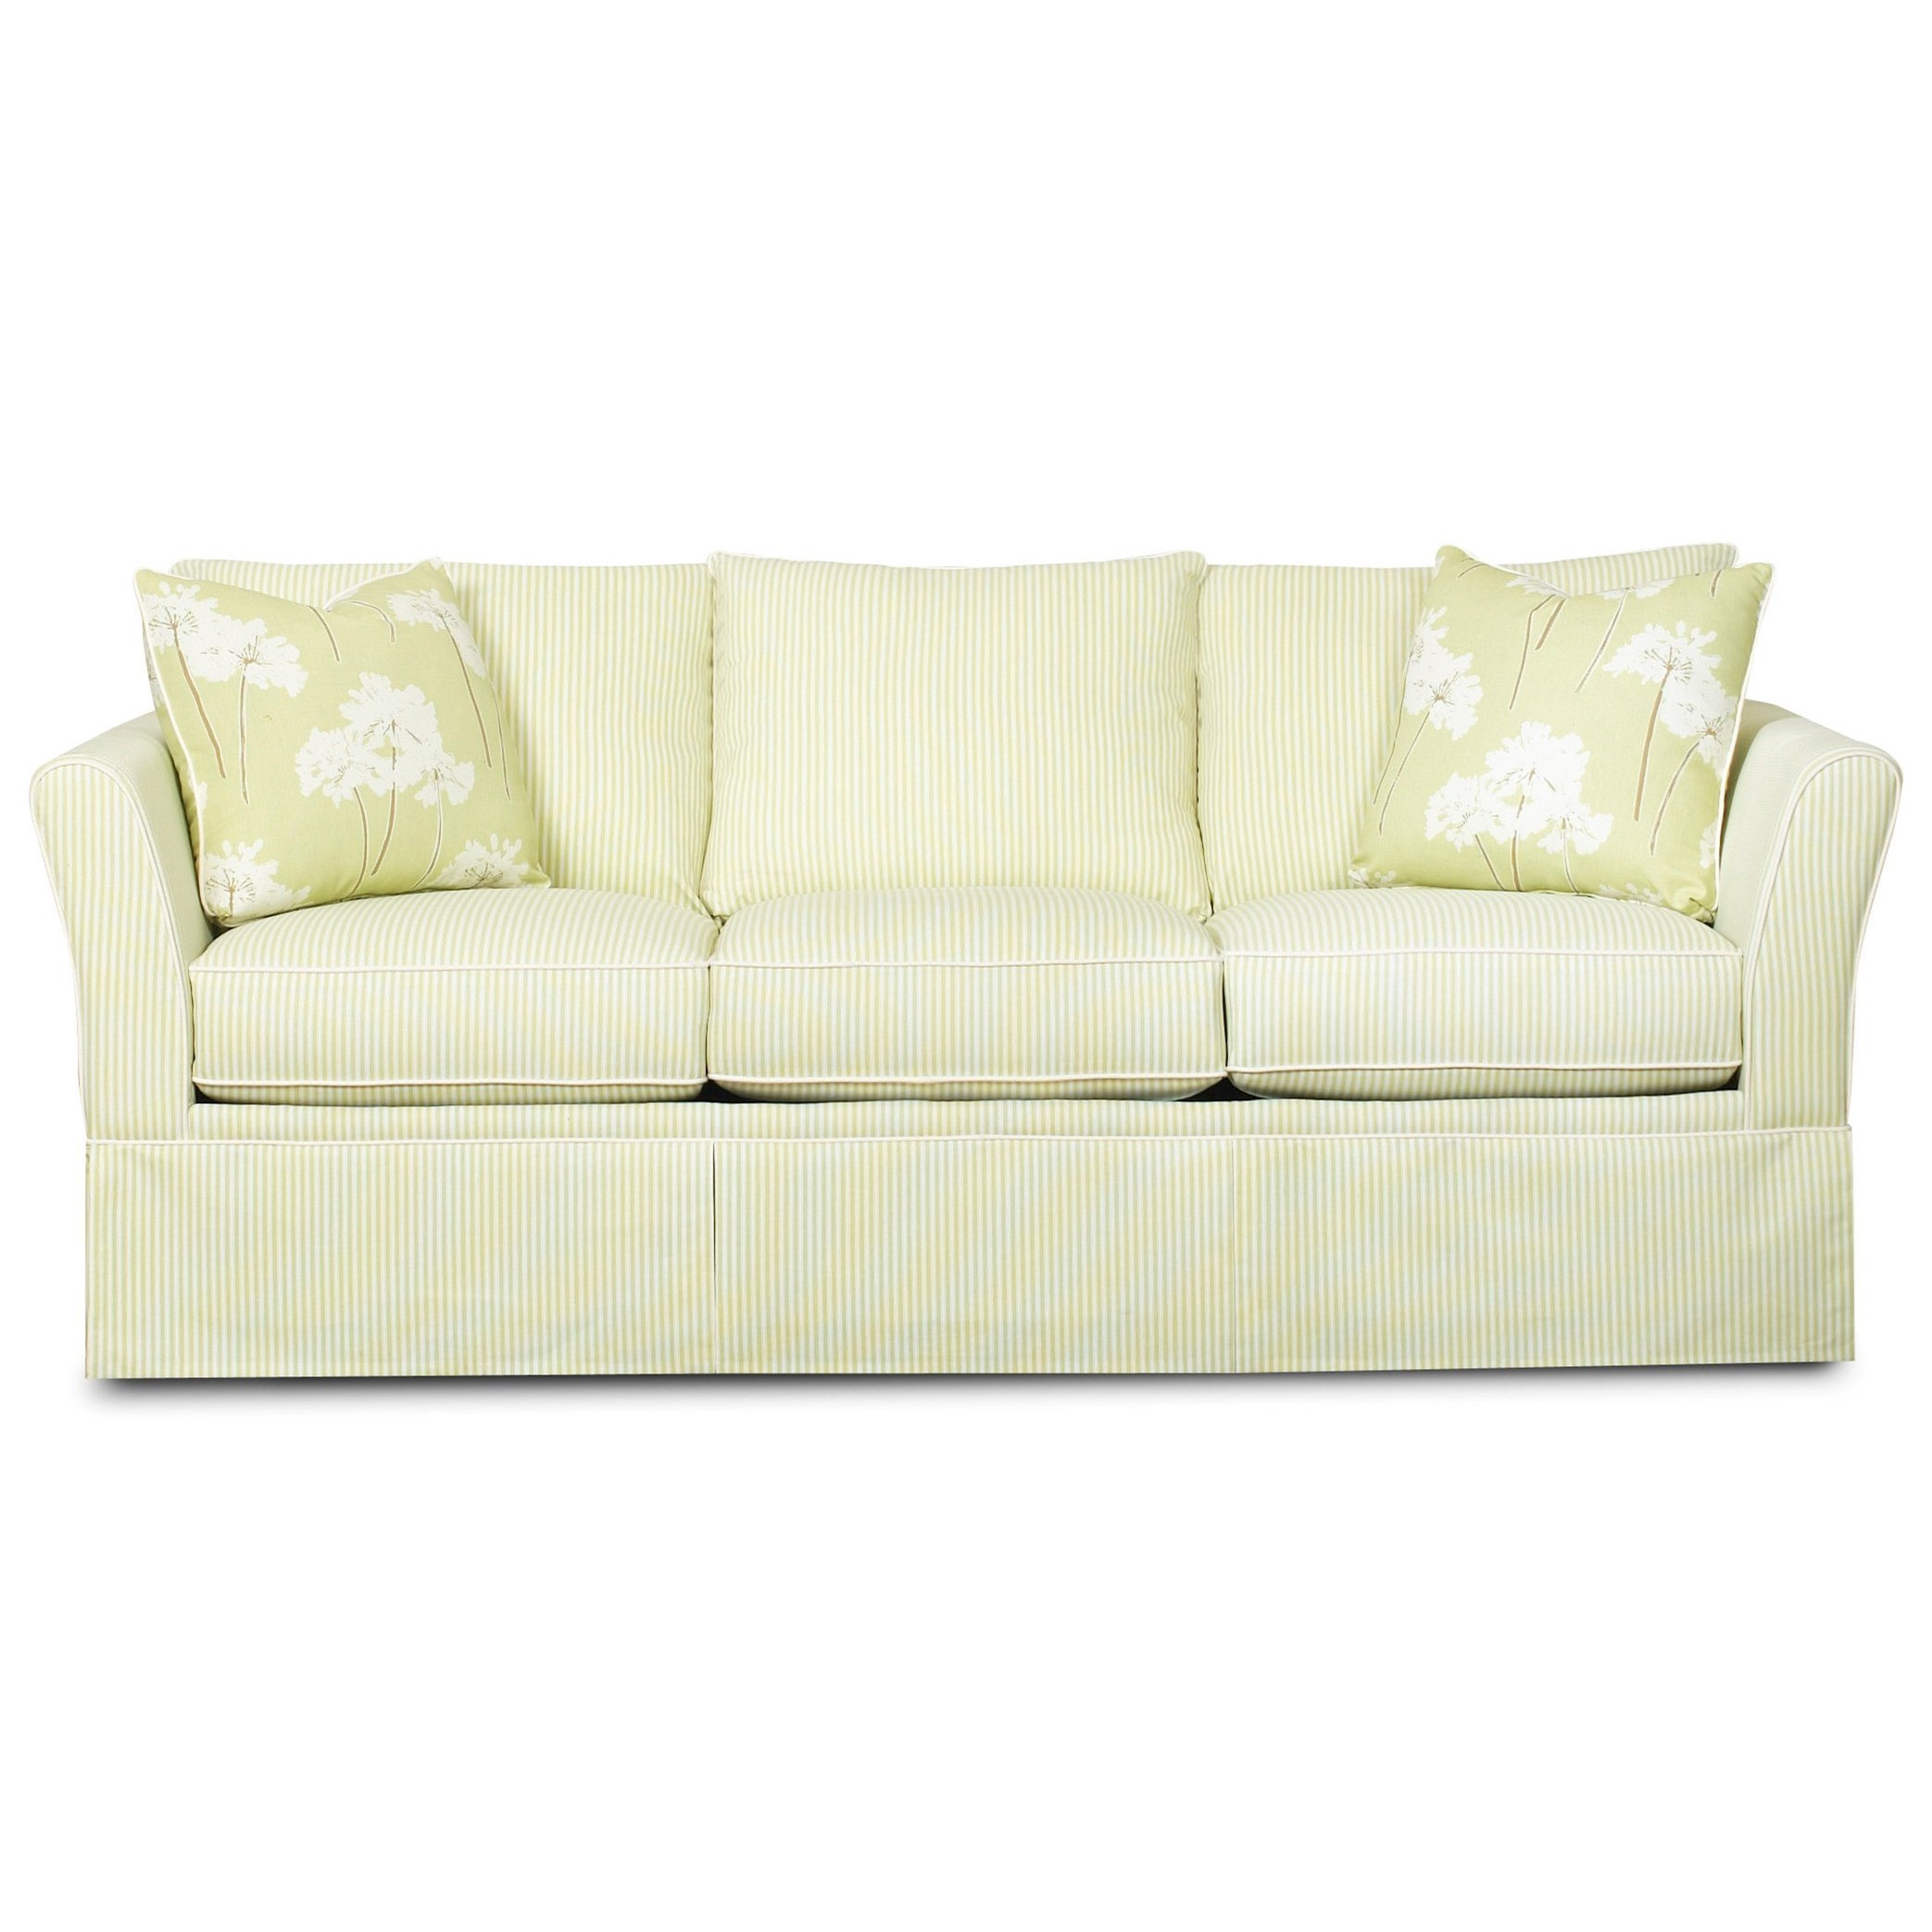 Ramona Sofa by Klaussner at Van Hill Furniture